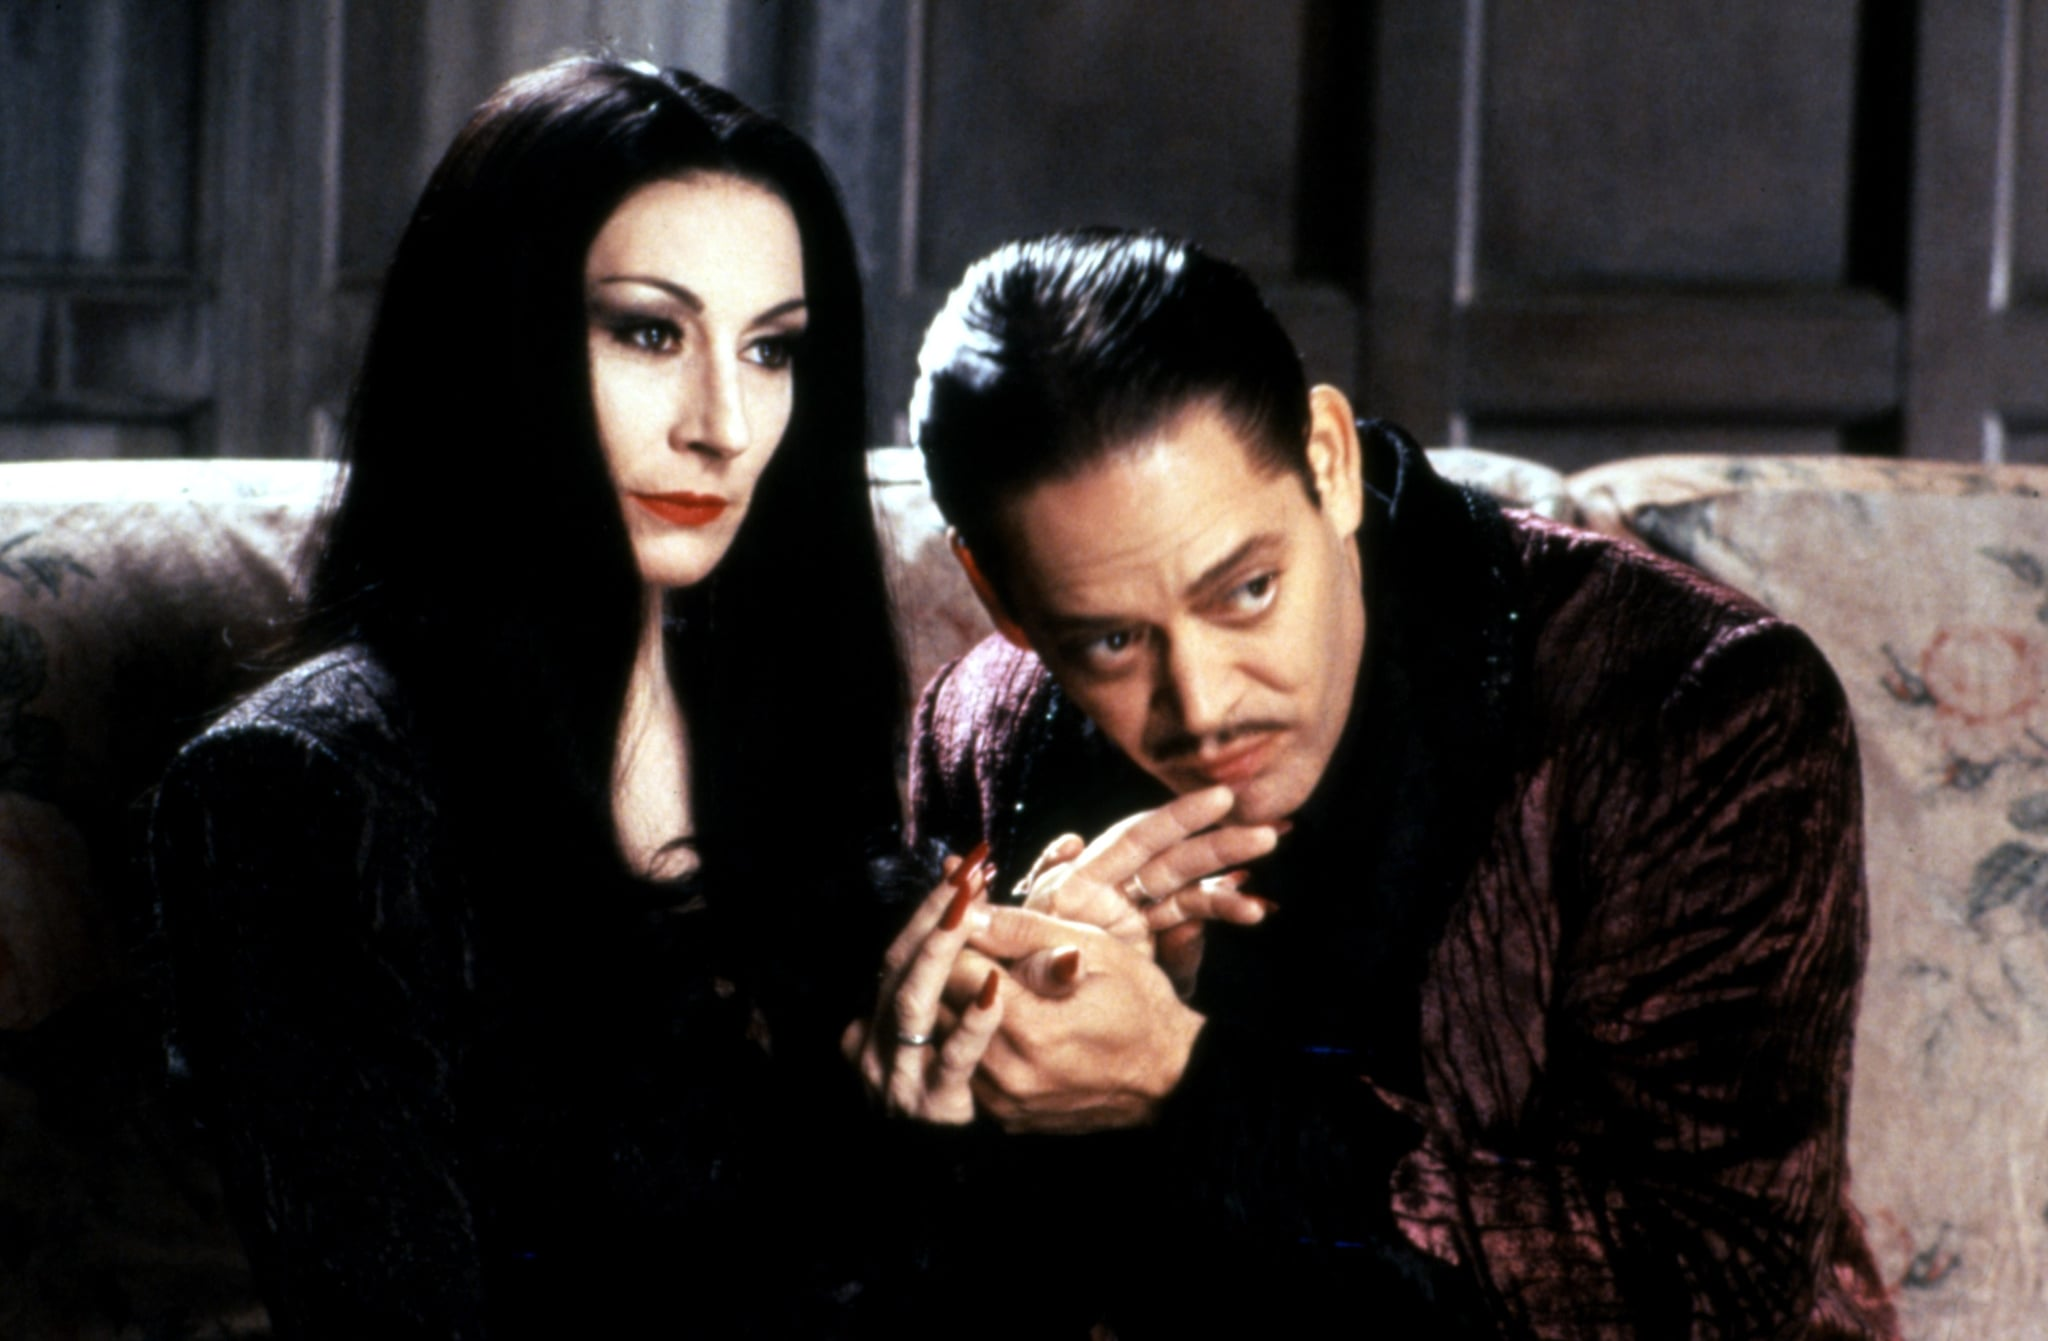 The Addams Family 1991 13 Halloween Movies On Netflix That Won T Give You Nightmares Popsugar Entertainment Photo 2